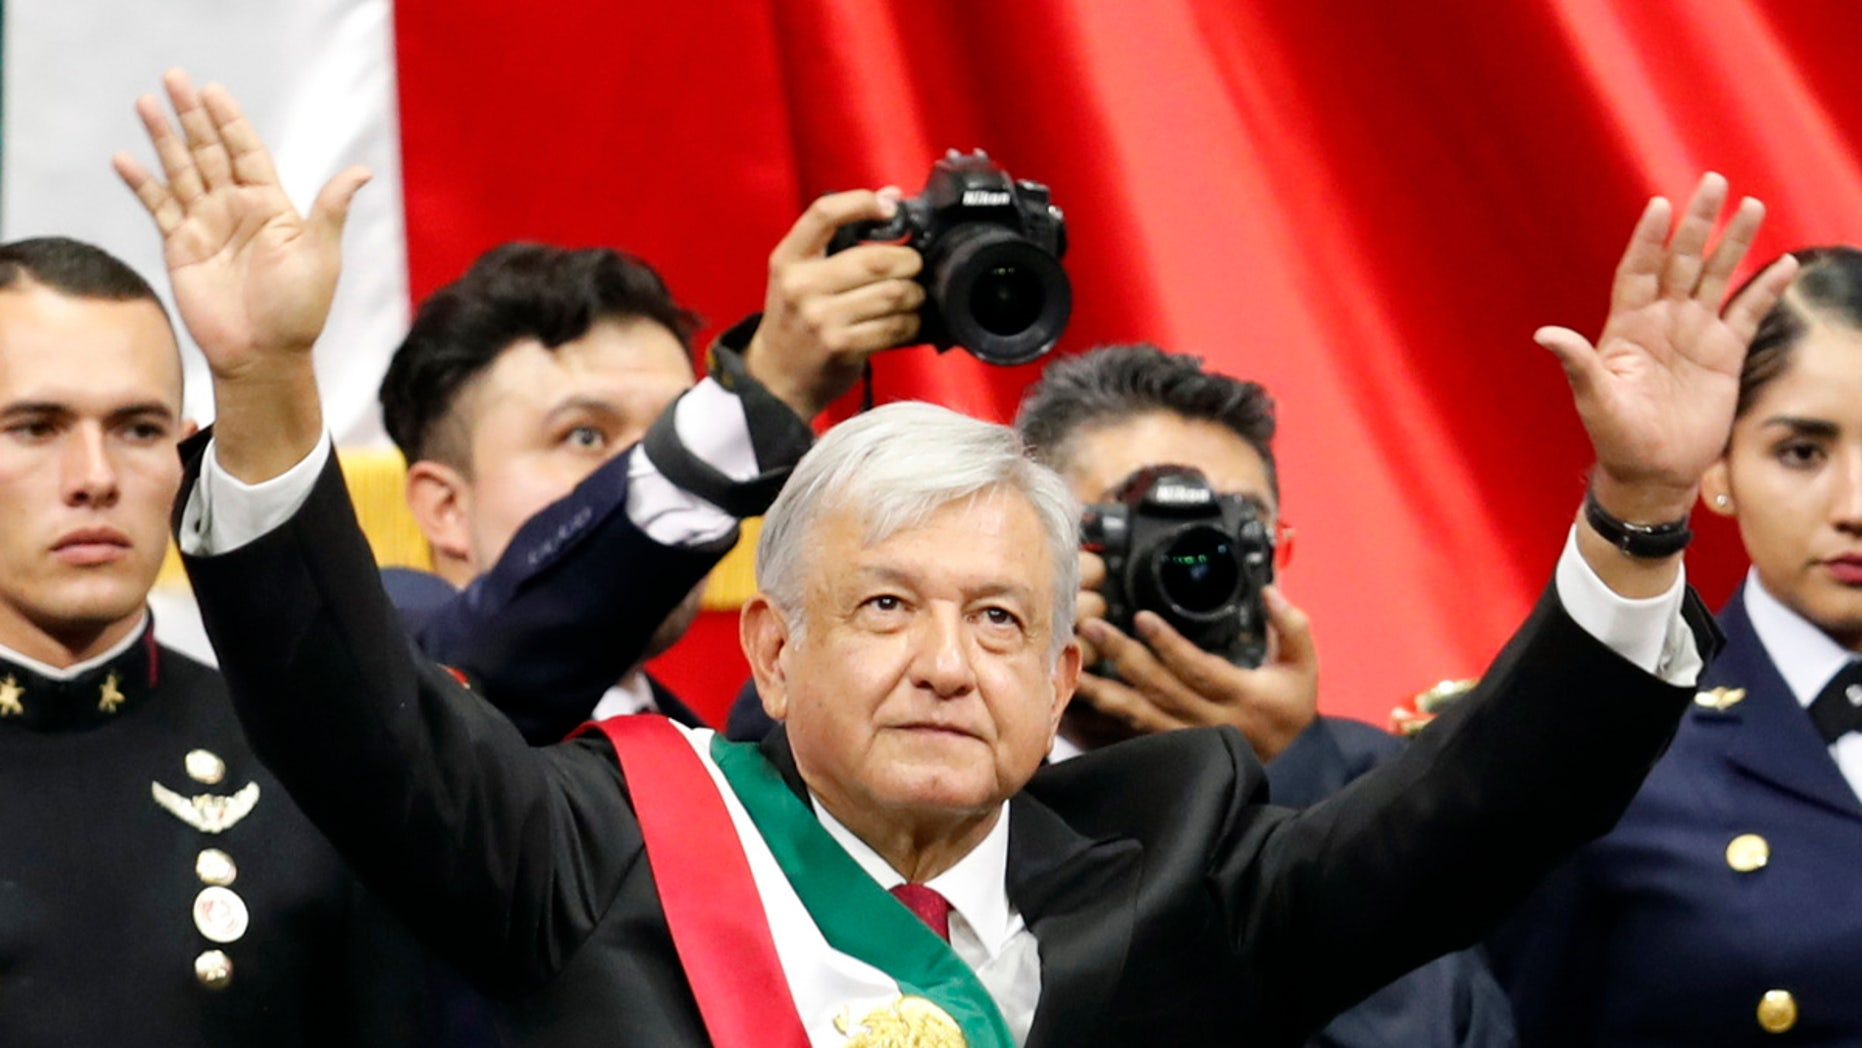 Mexican left-wing President Andres Manuel Lopez Obrador has asked Spain and the Vatican to apologize to his country for the conquest of the Americas five centuries ago, a move met with a stark rebuttal in Spain.